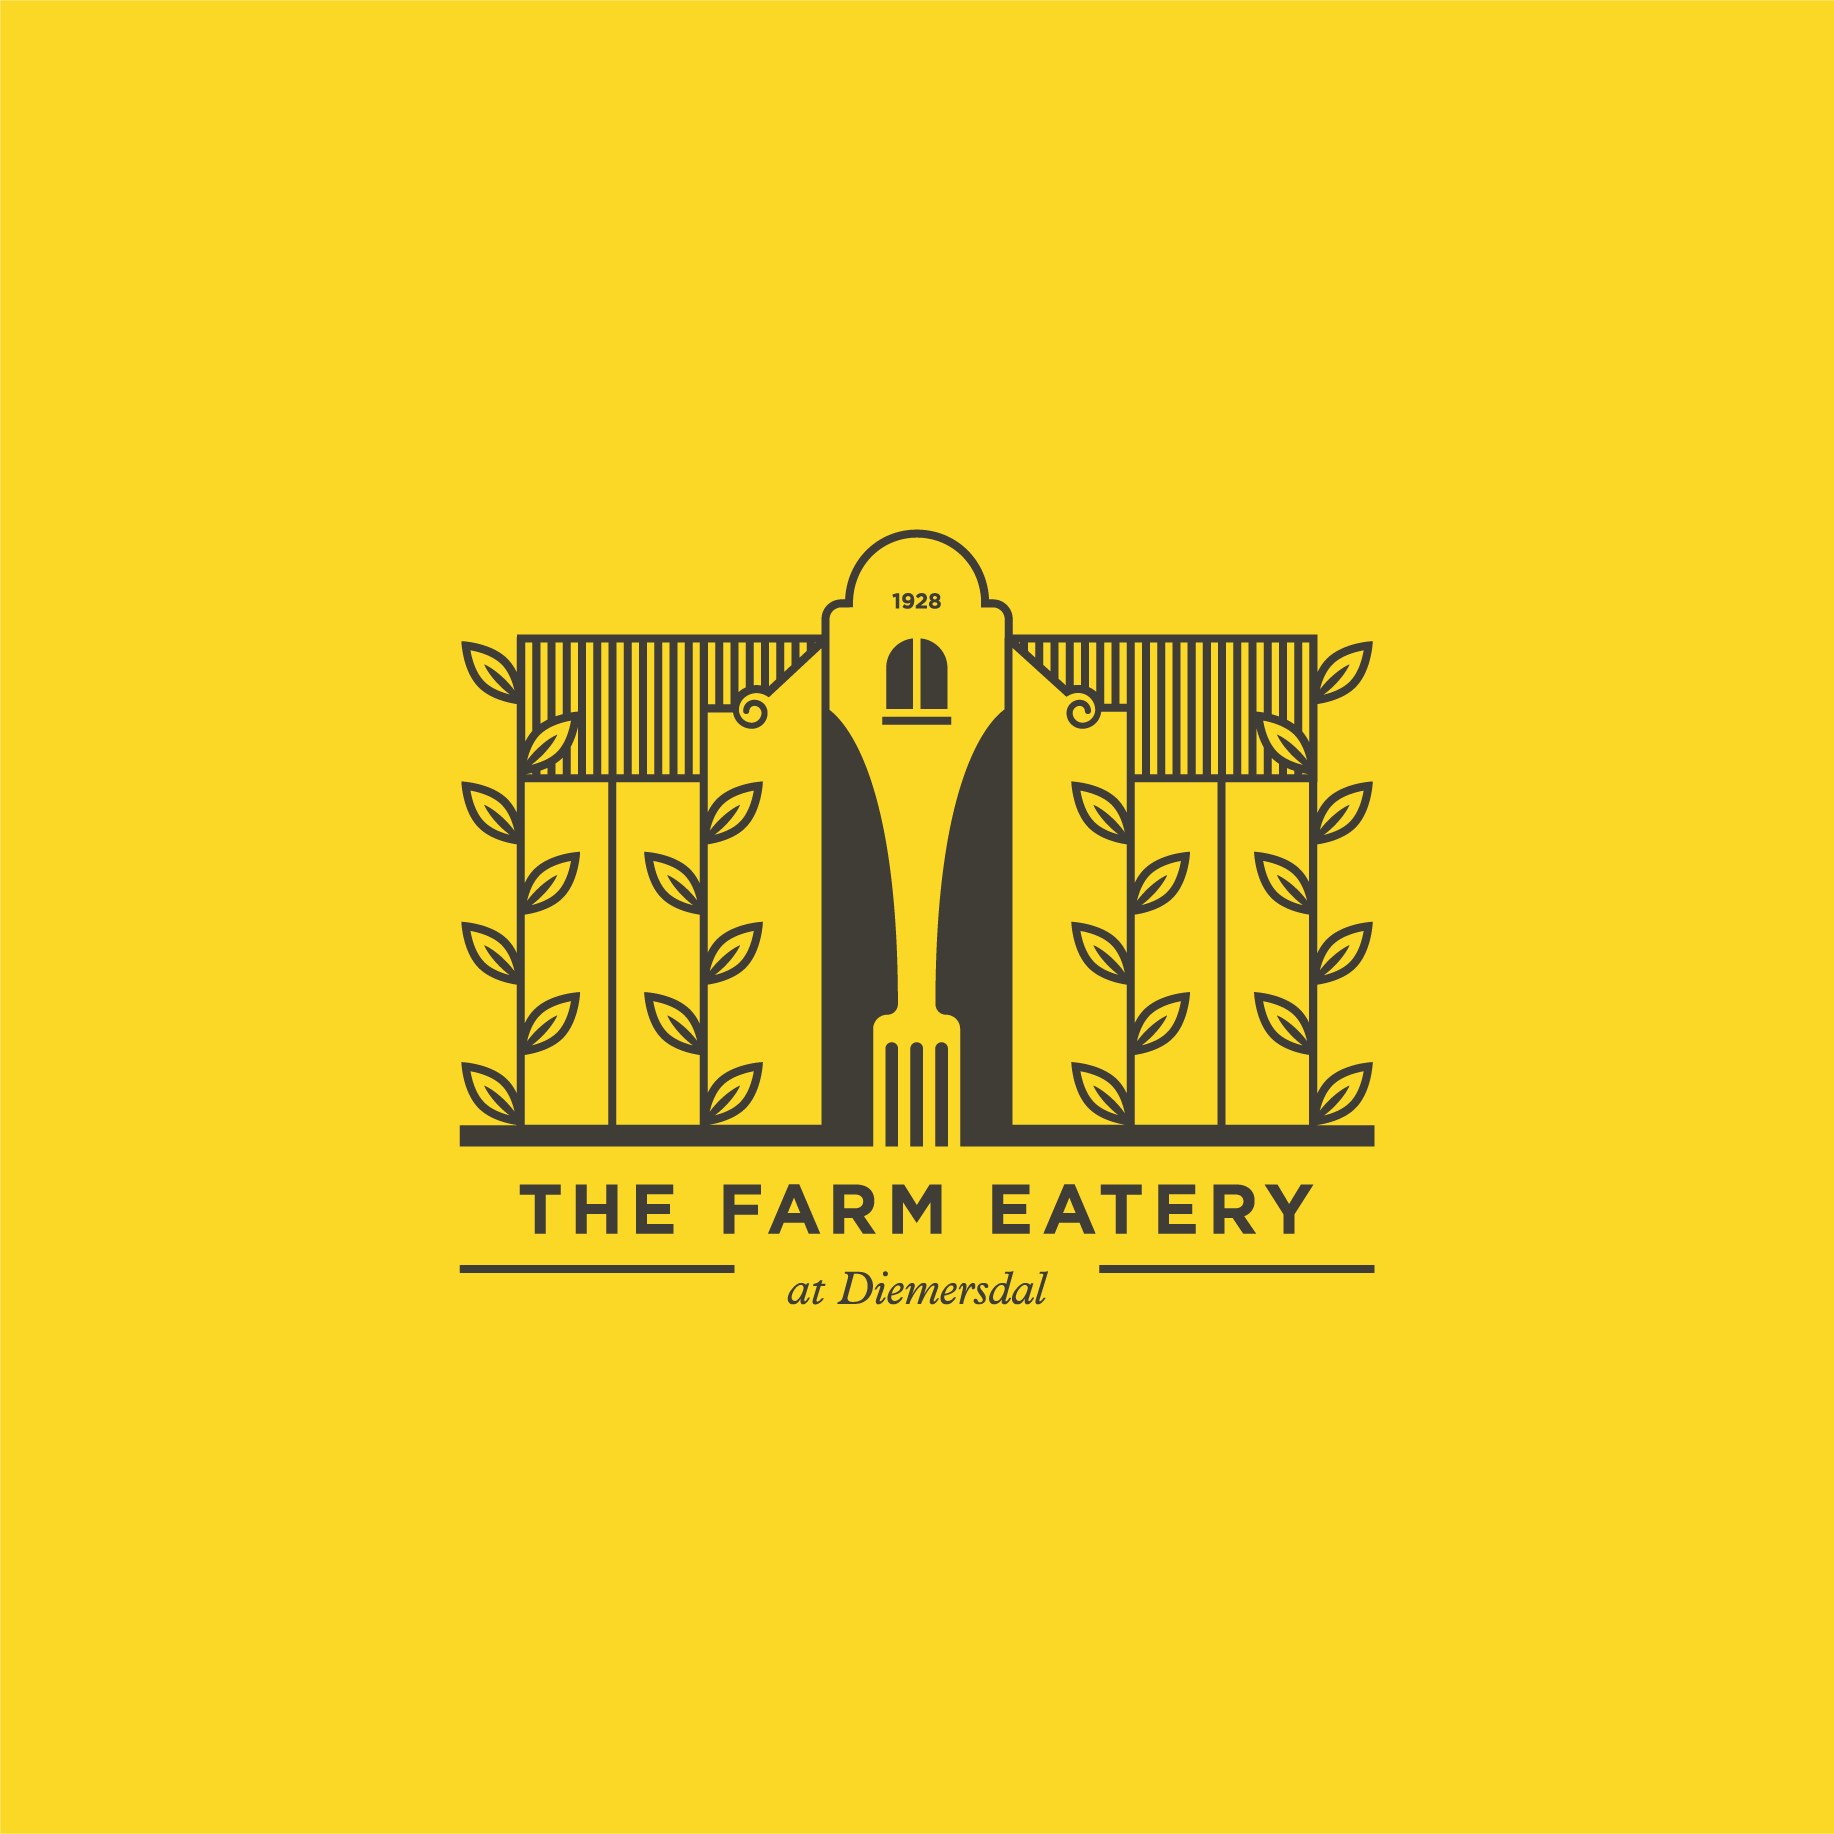 The Farm Eatery